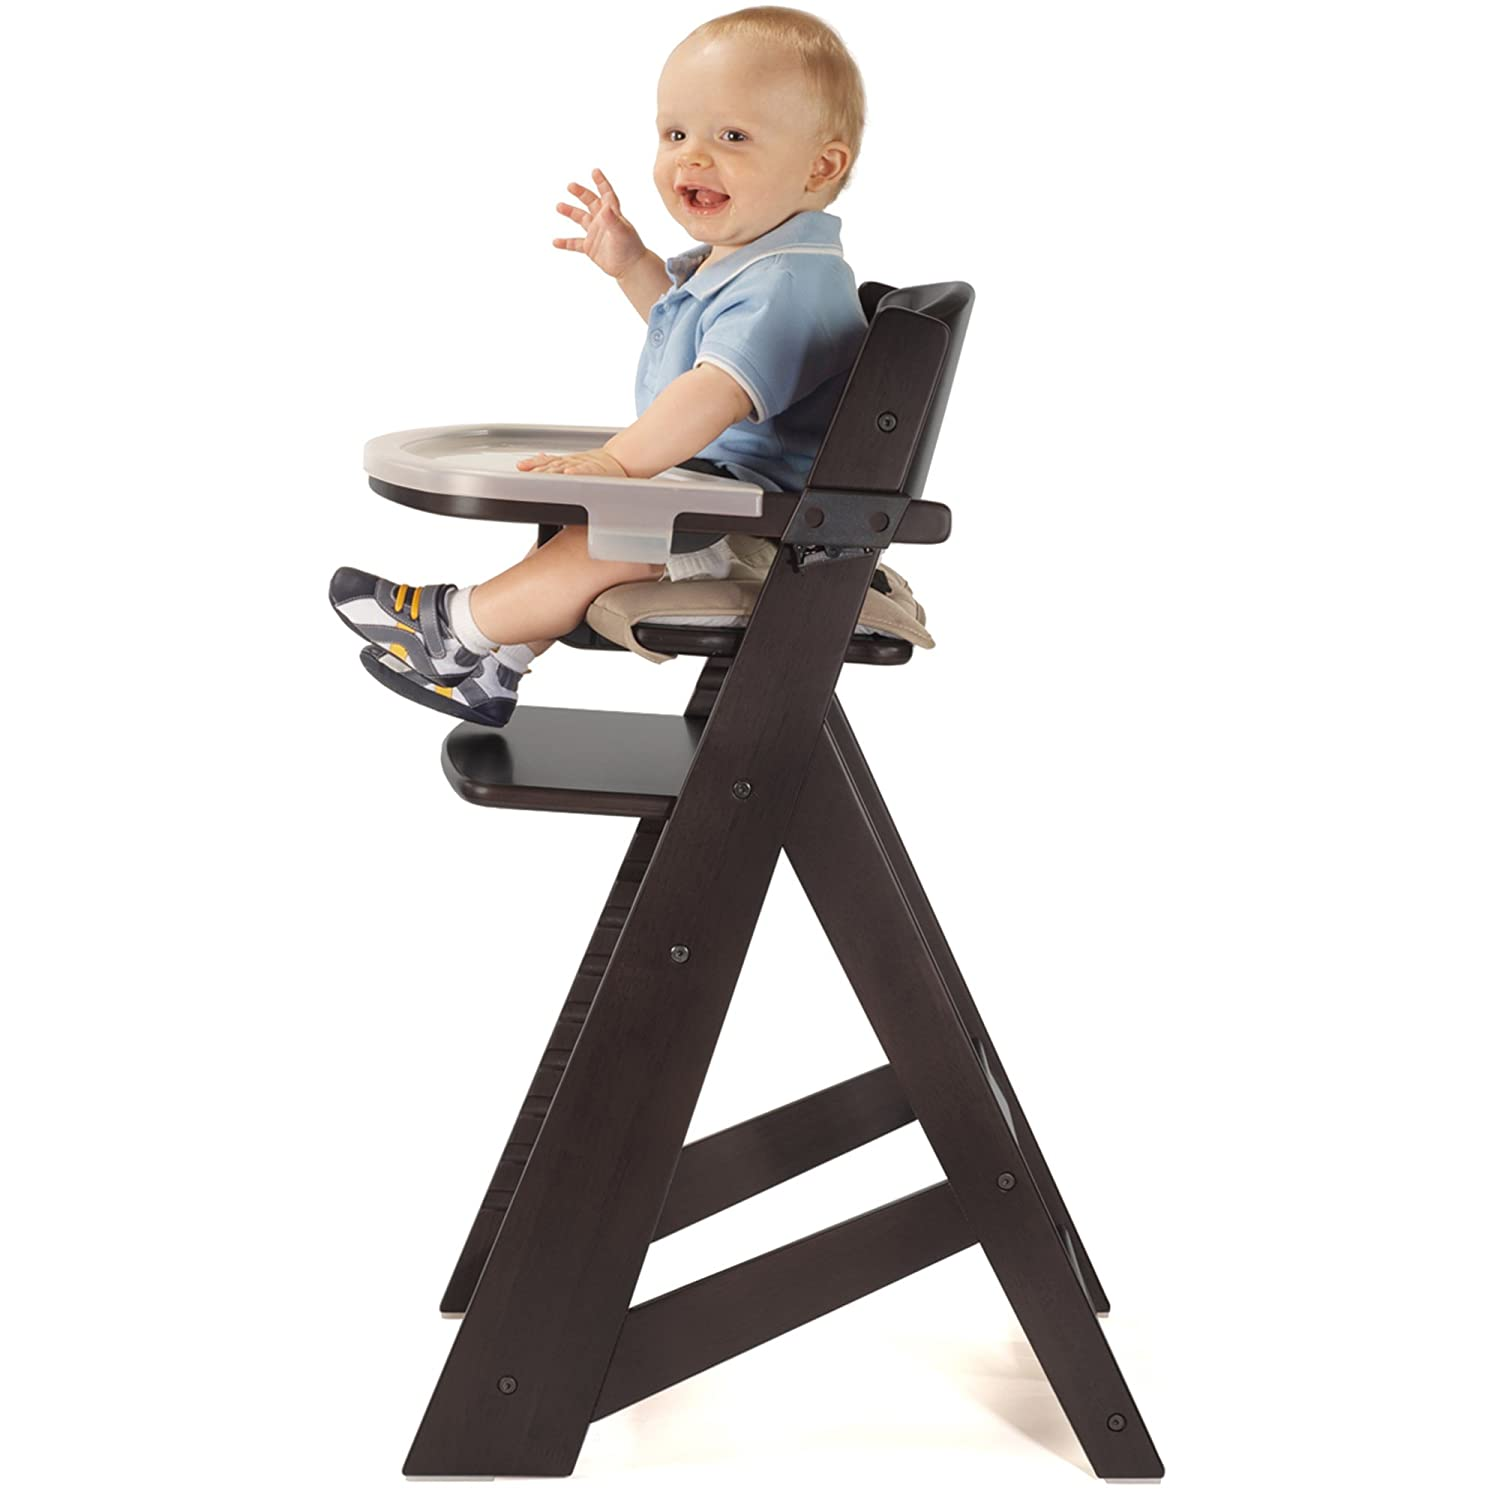 Espresso Keekaroo Kids Height Right High Chair with Tray